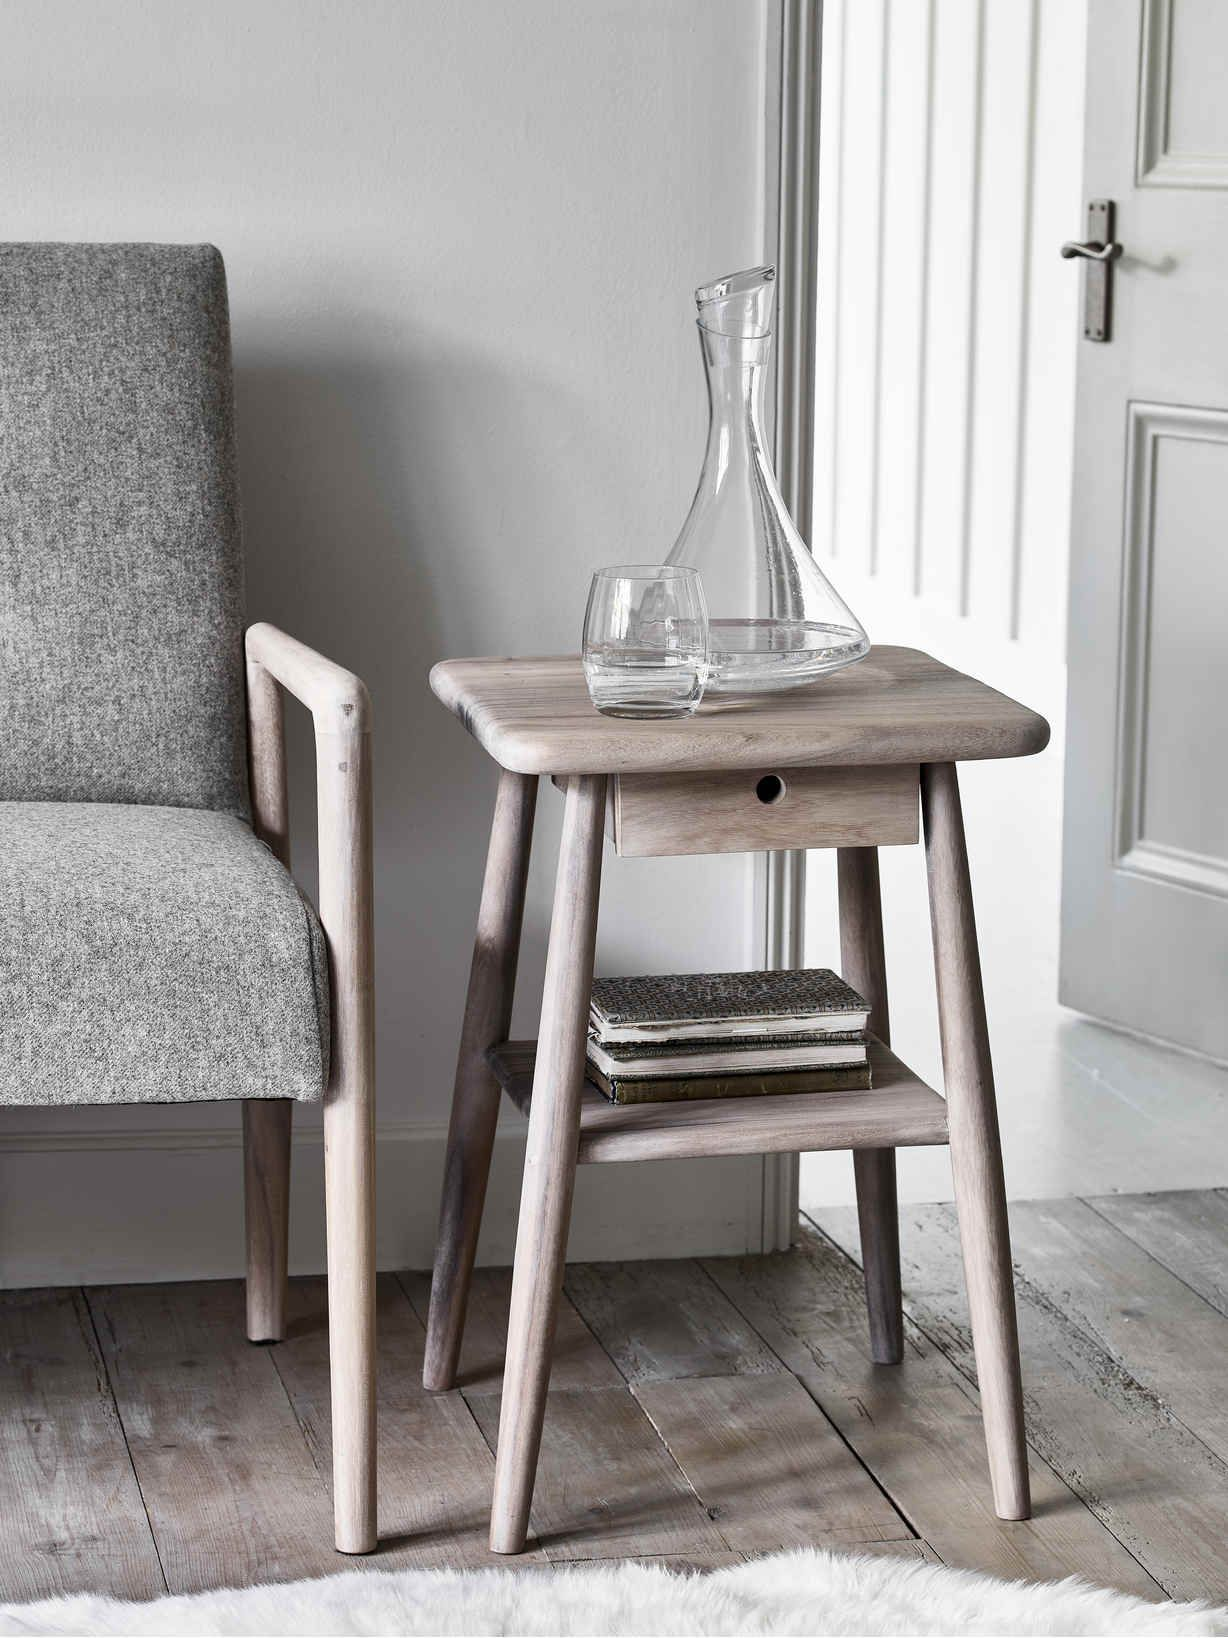 Sundby Side Table In 2020 Mid Century Side Table Side Table Nordic Furniture